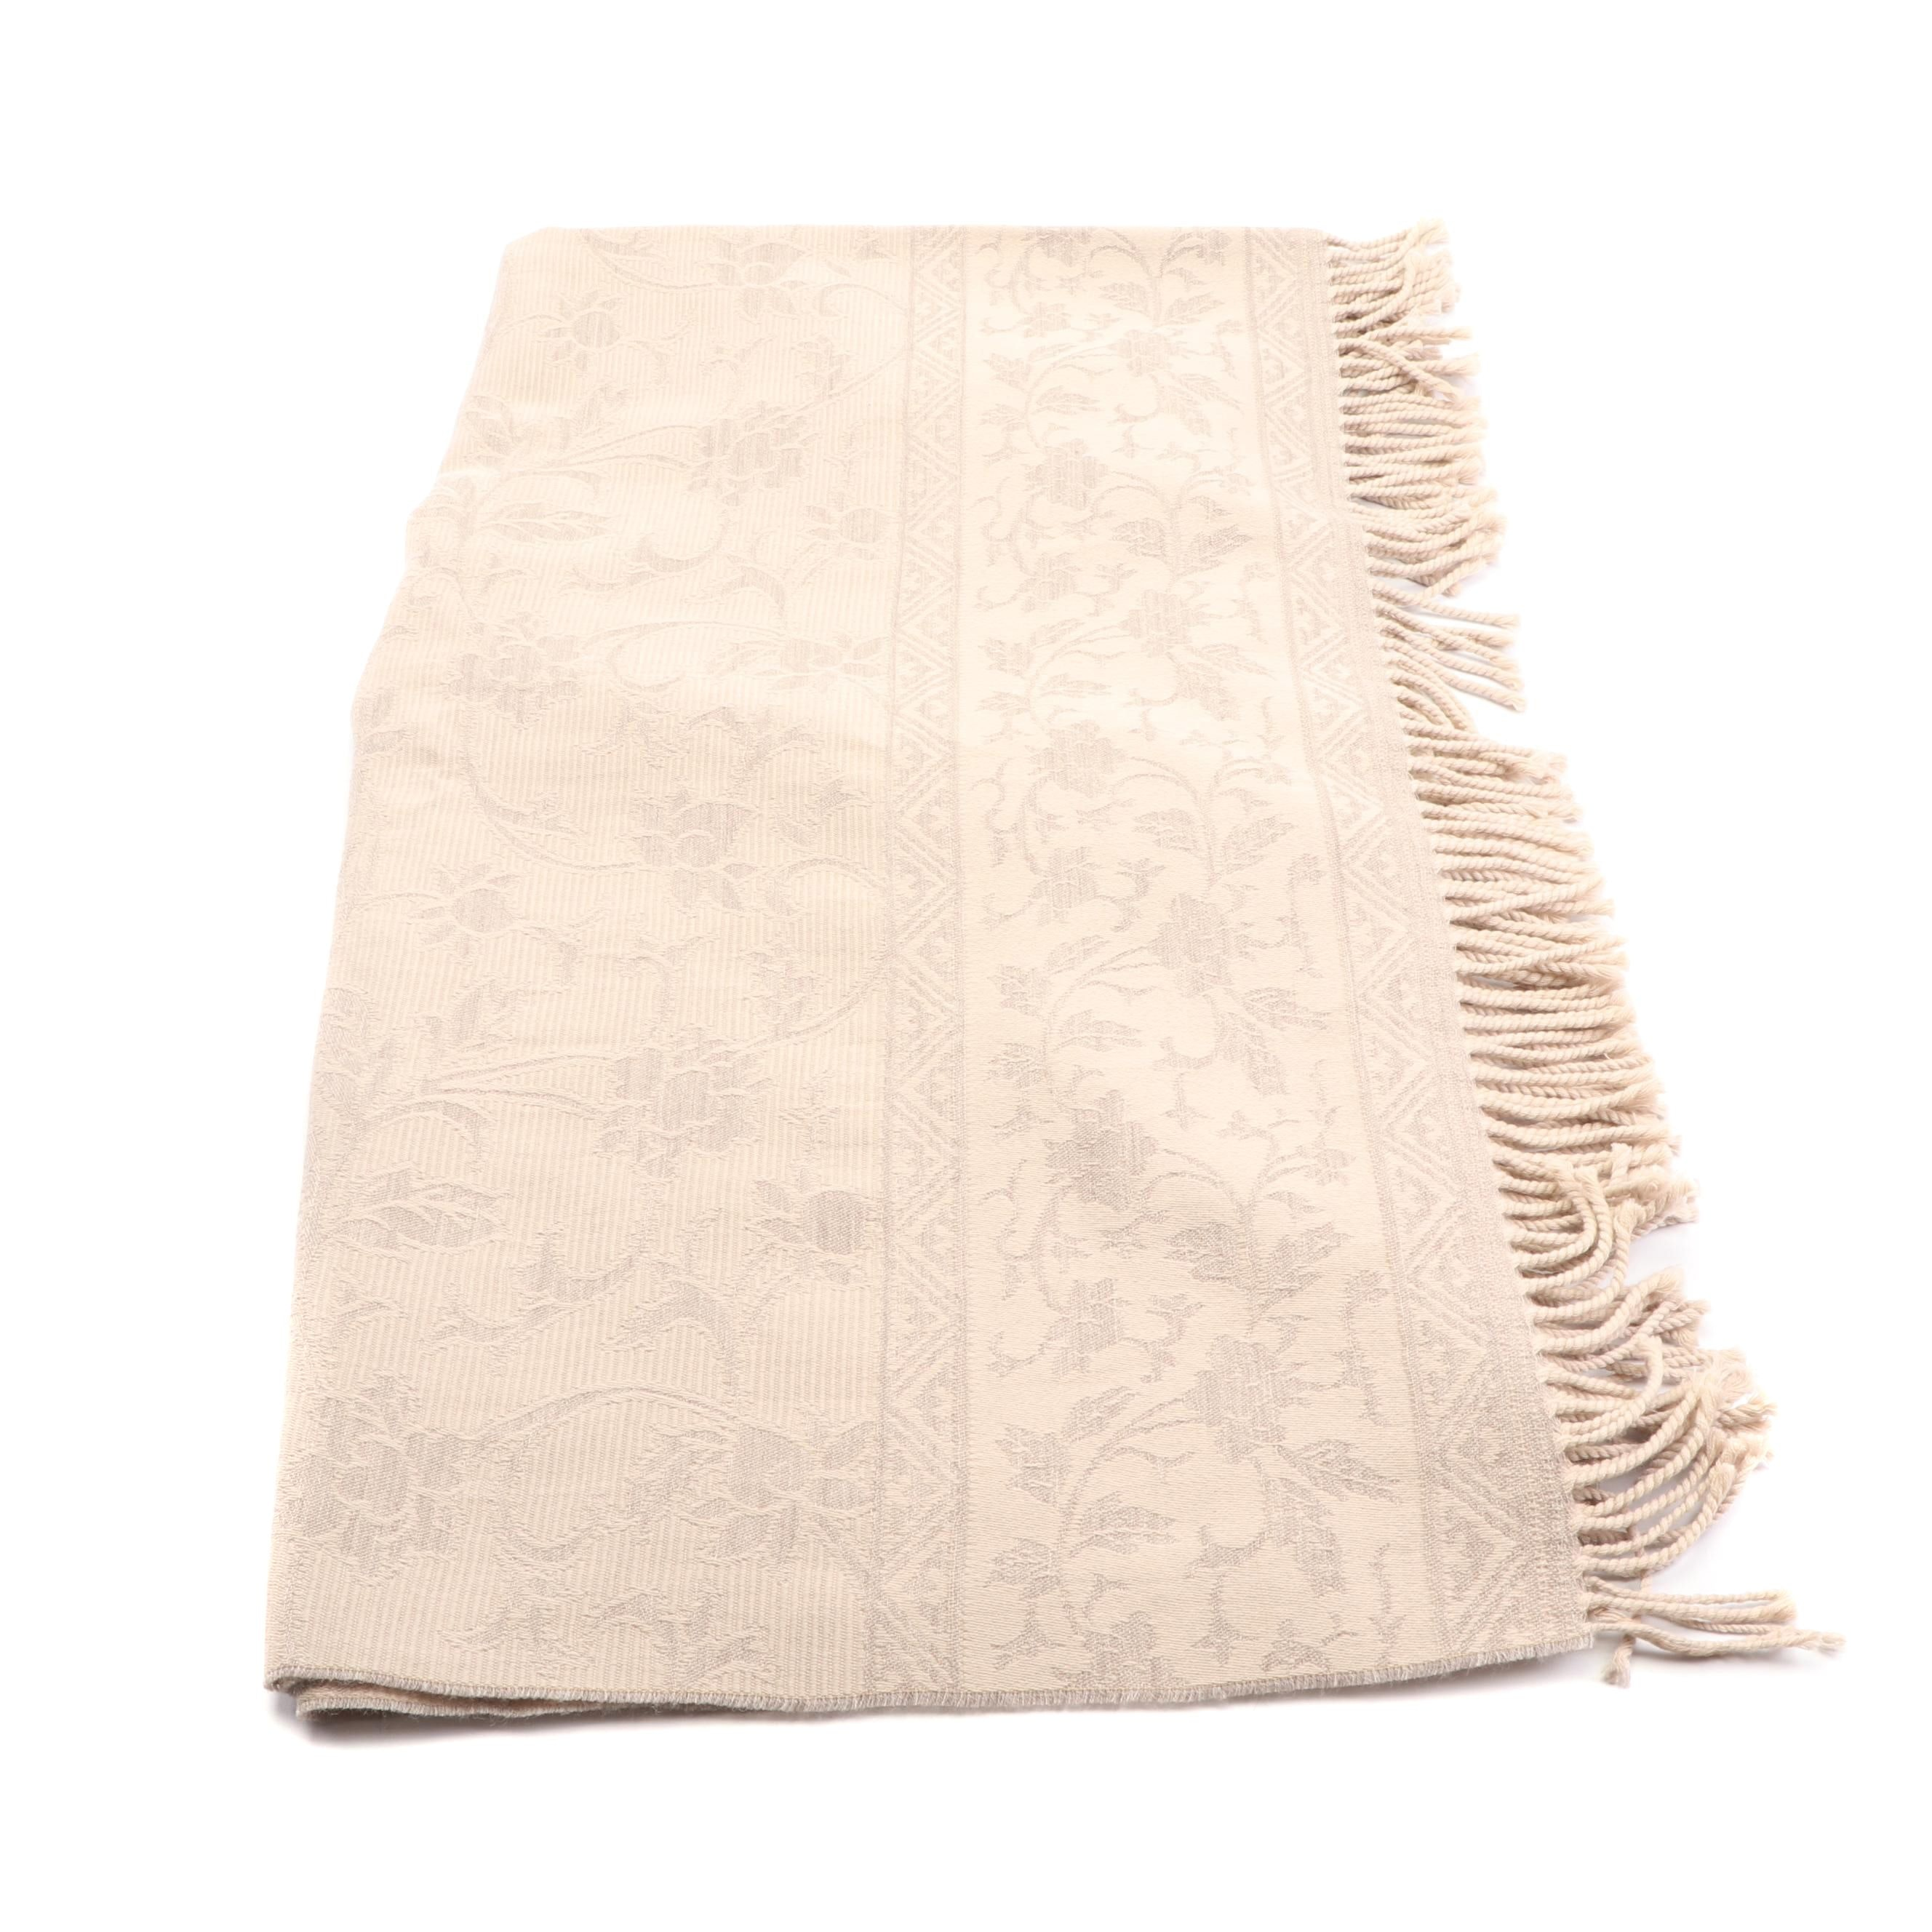 Cecchi e Cecchi Beige Wool Floral Pattern Fringed Shawl, Made in Italy